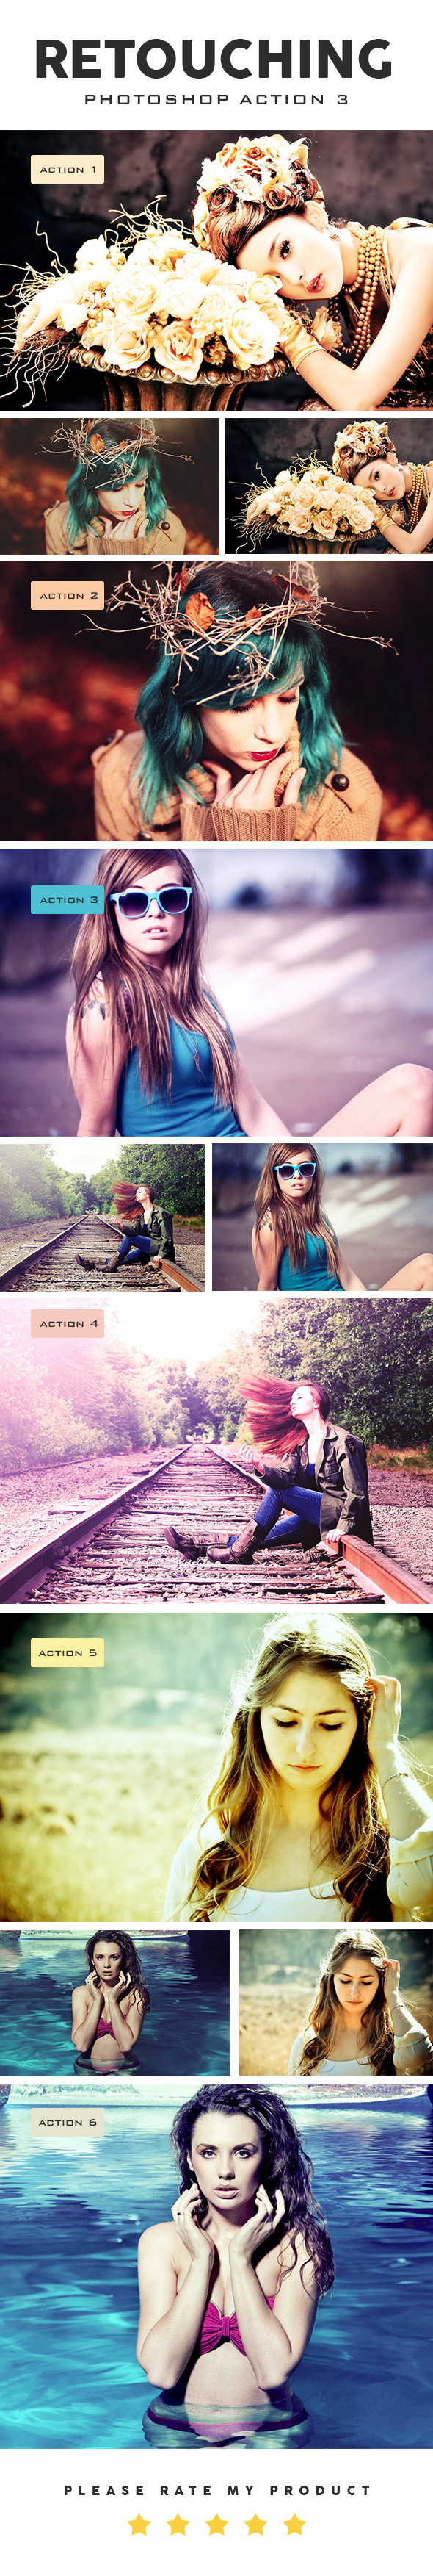 GraphicRiver Retouching Photoshop Action 3 10575990